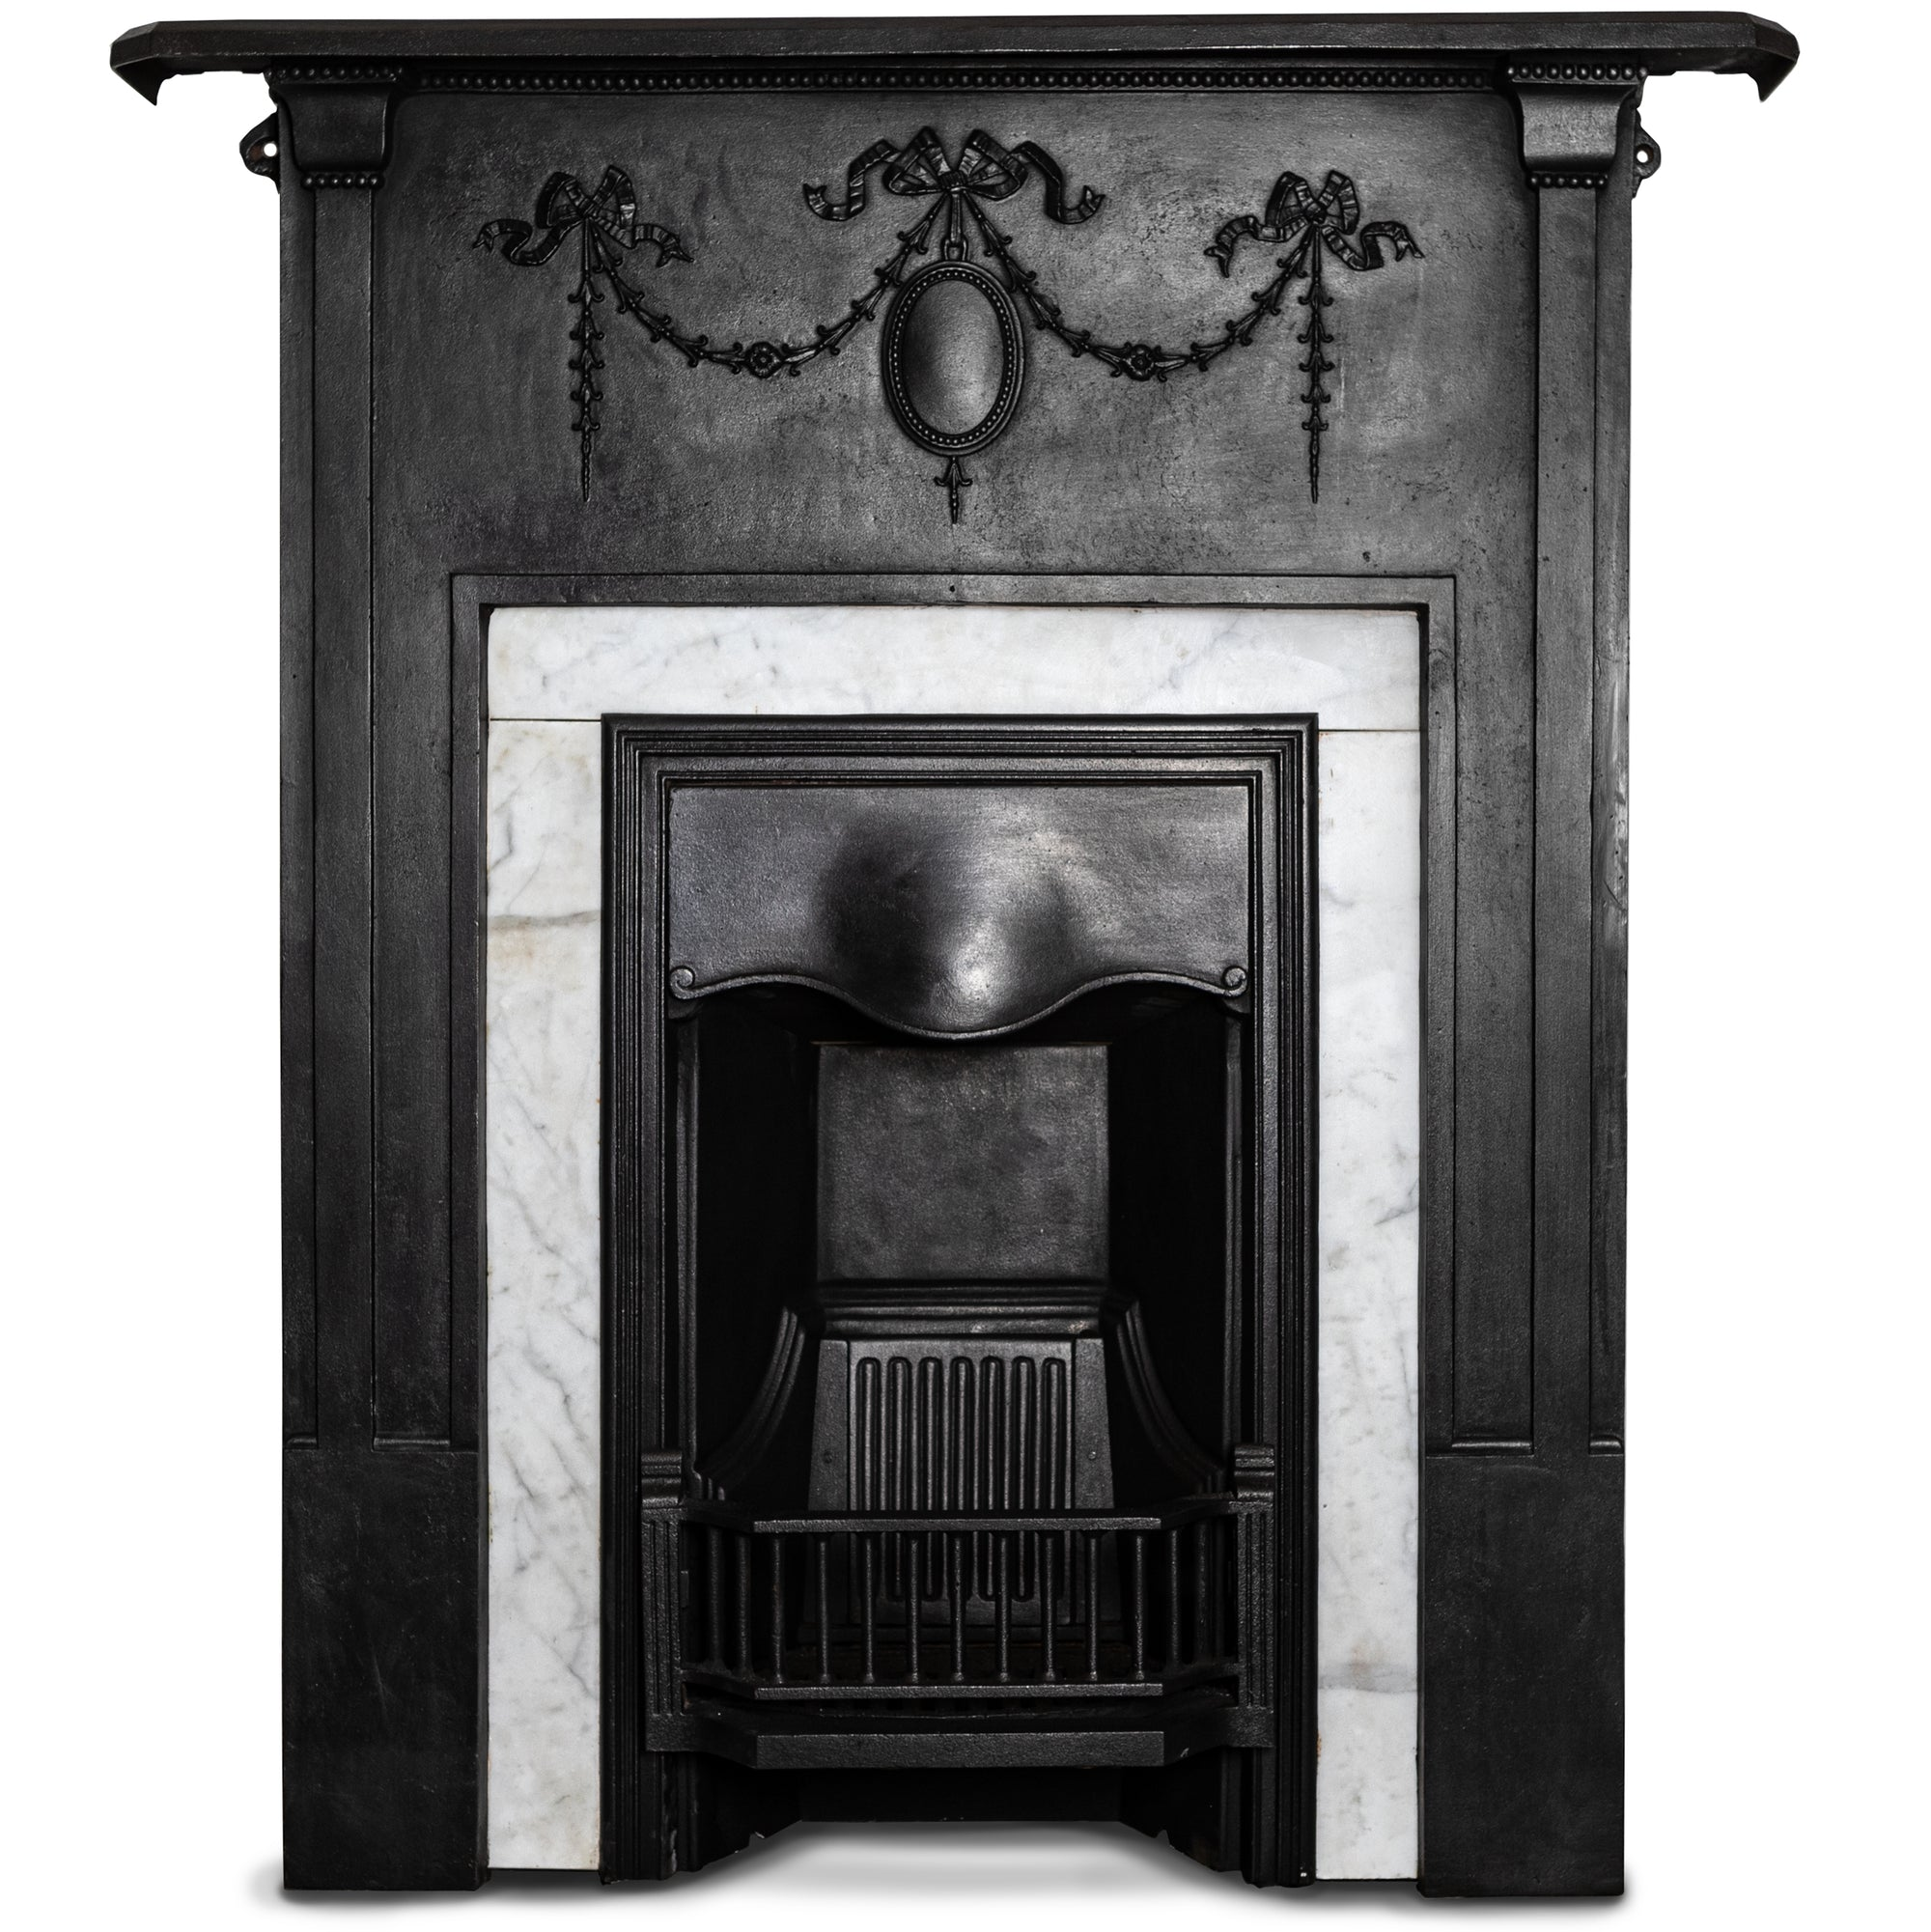 Antique Cast Iron Combination Fireplace With Carrara Marble | The Architectural Forum